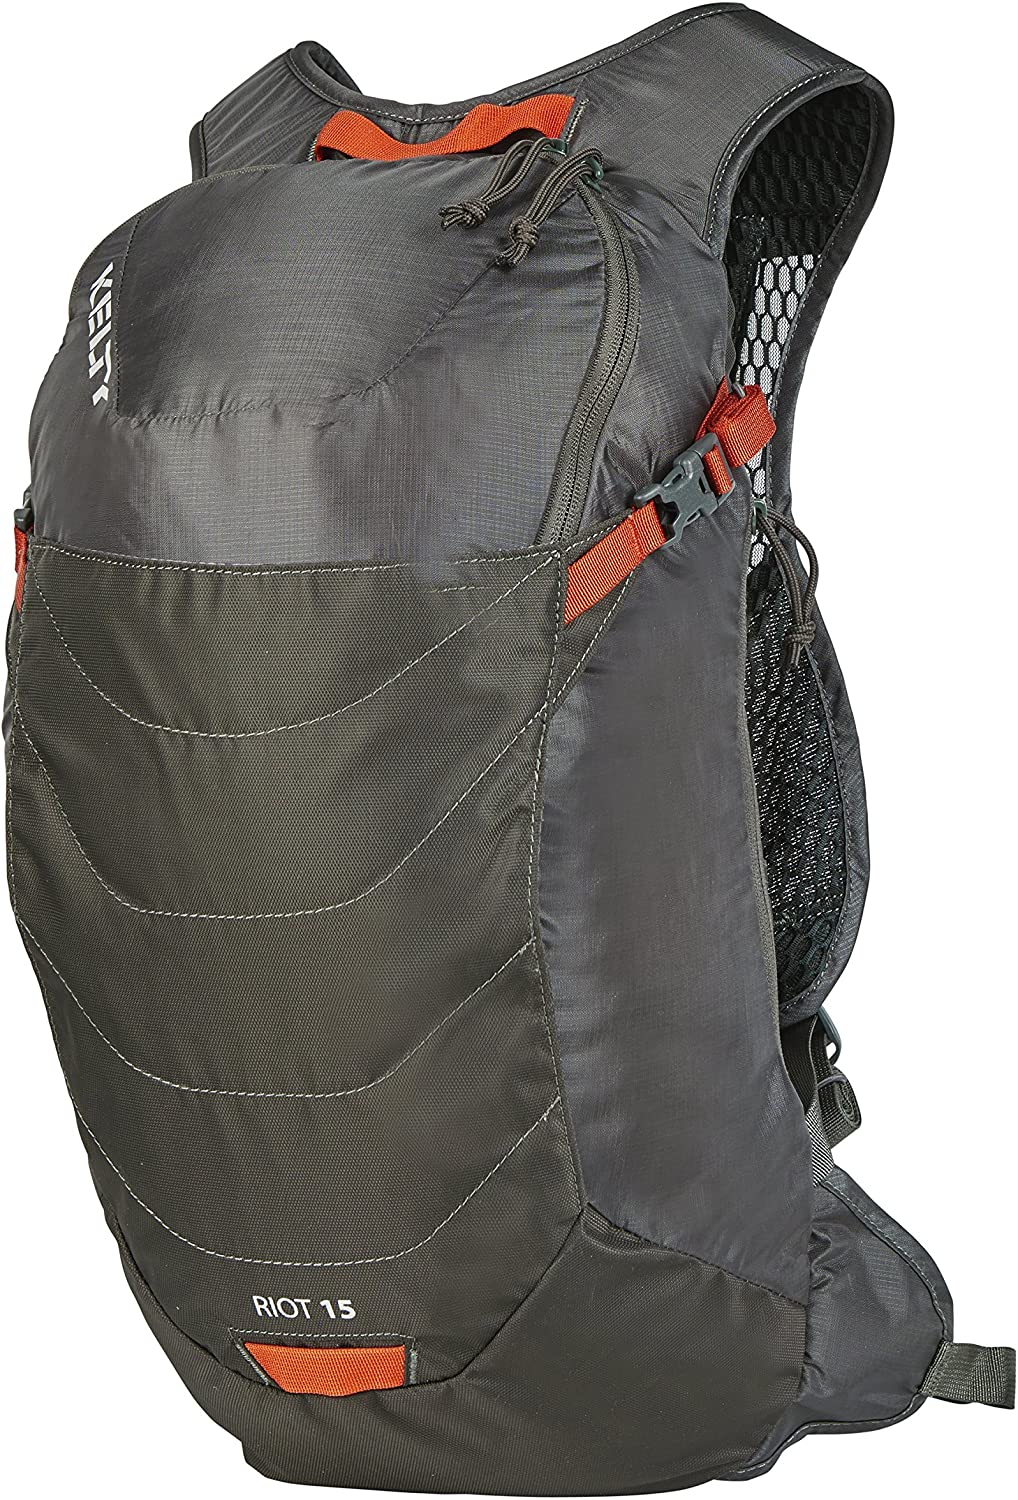 Kelty Unisex's Riot Hiking Backpack